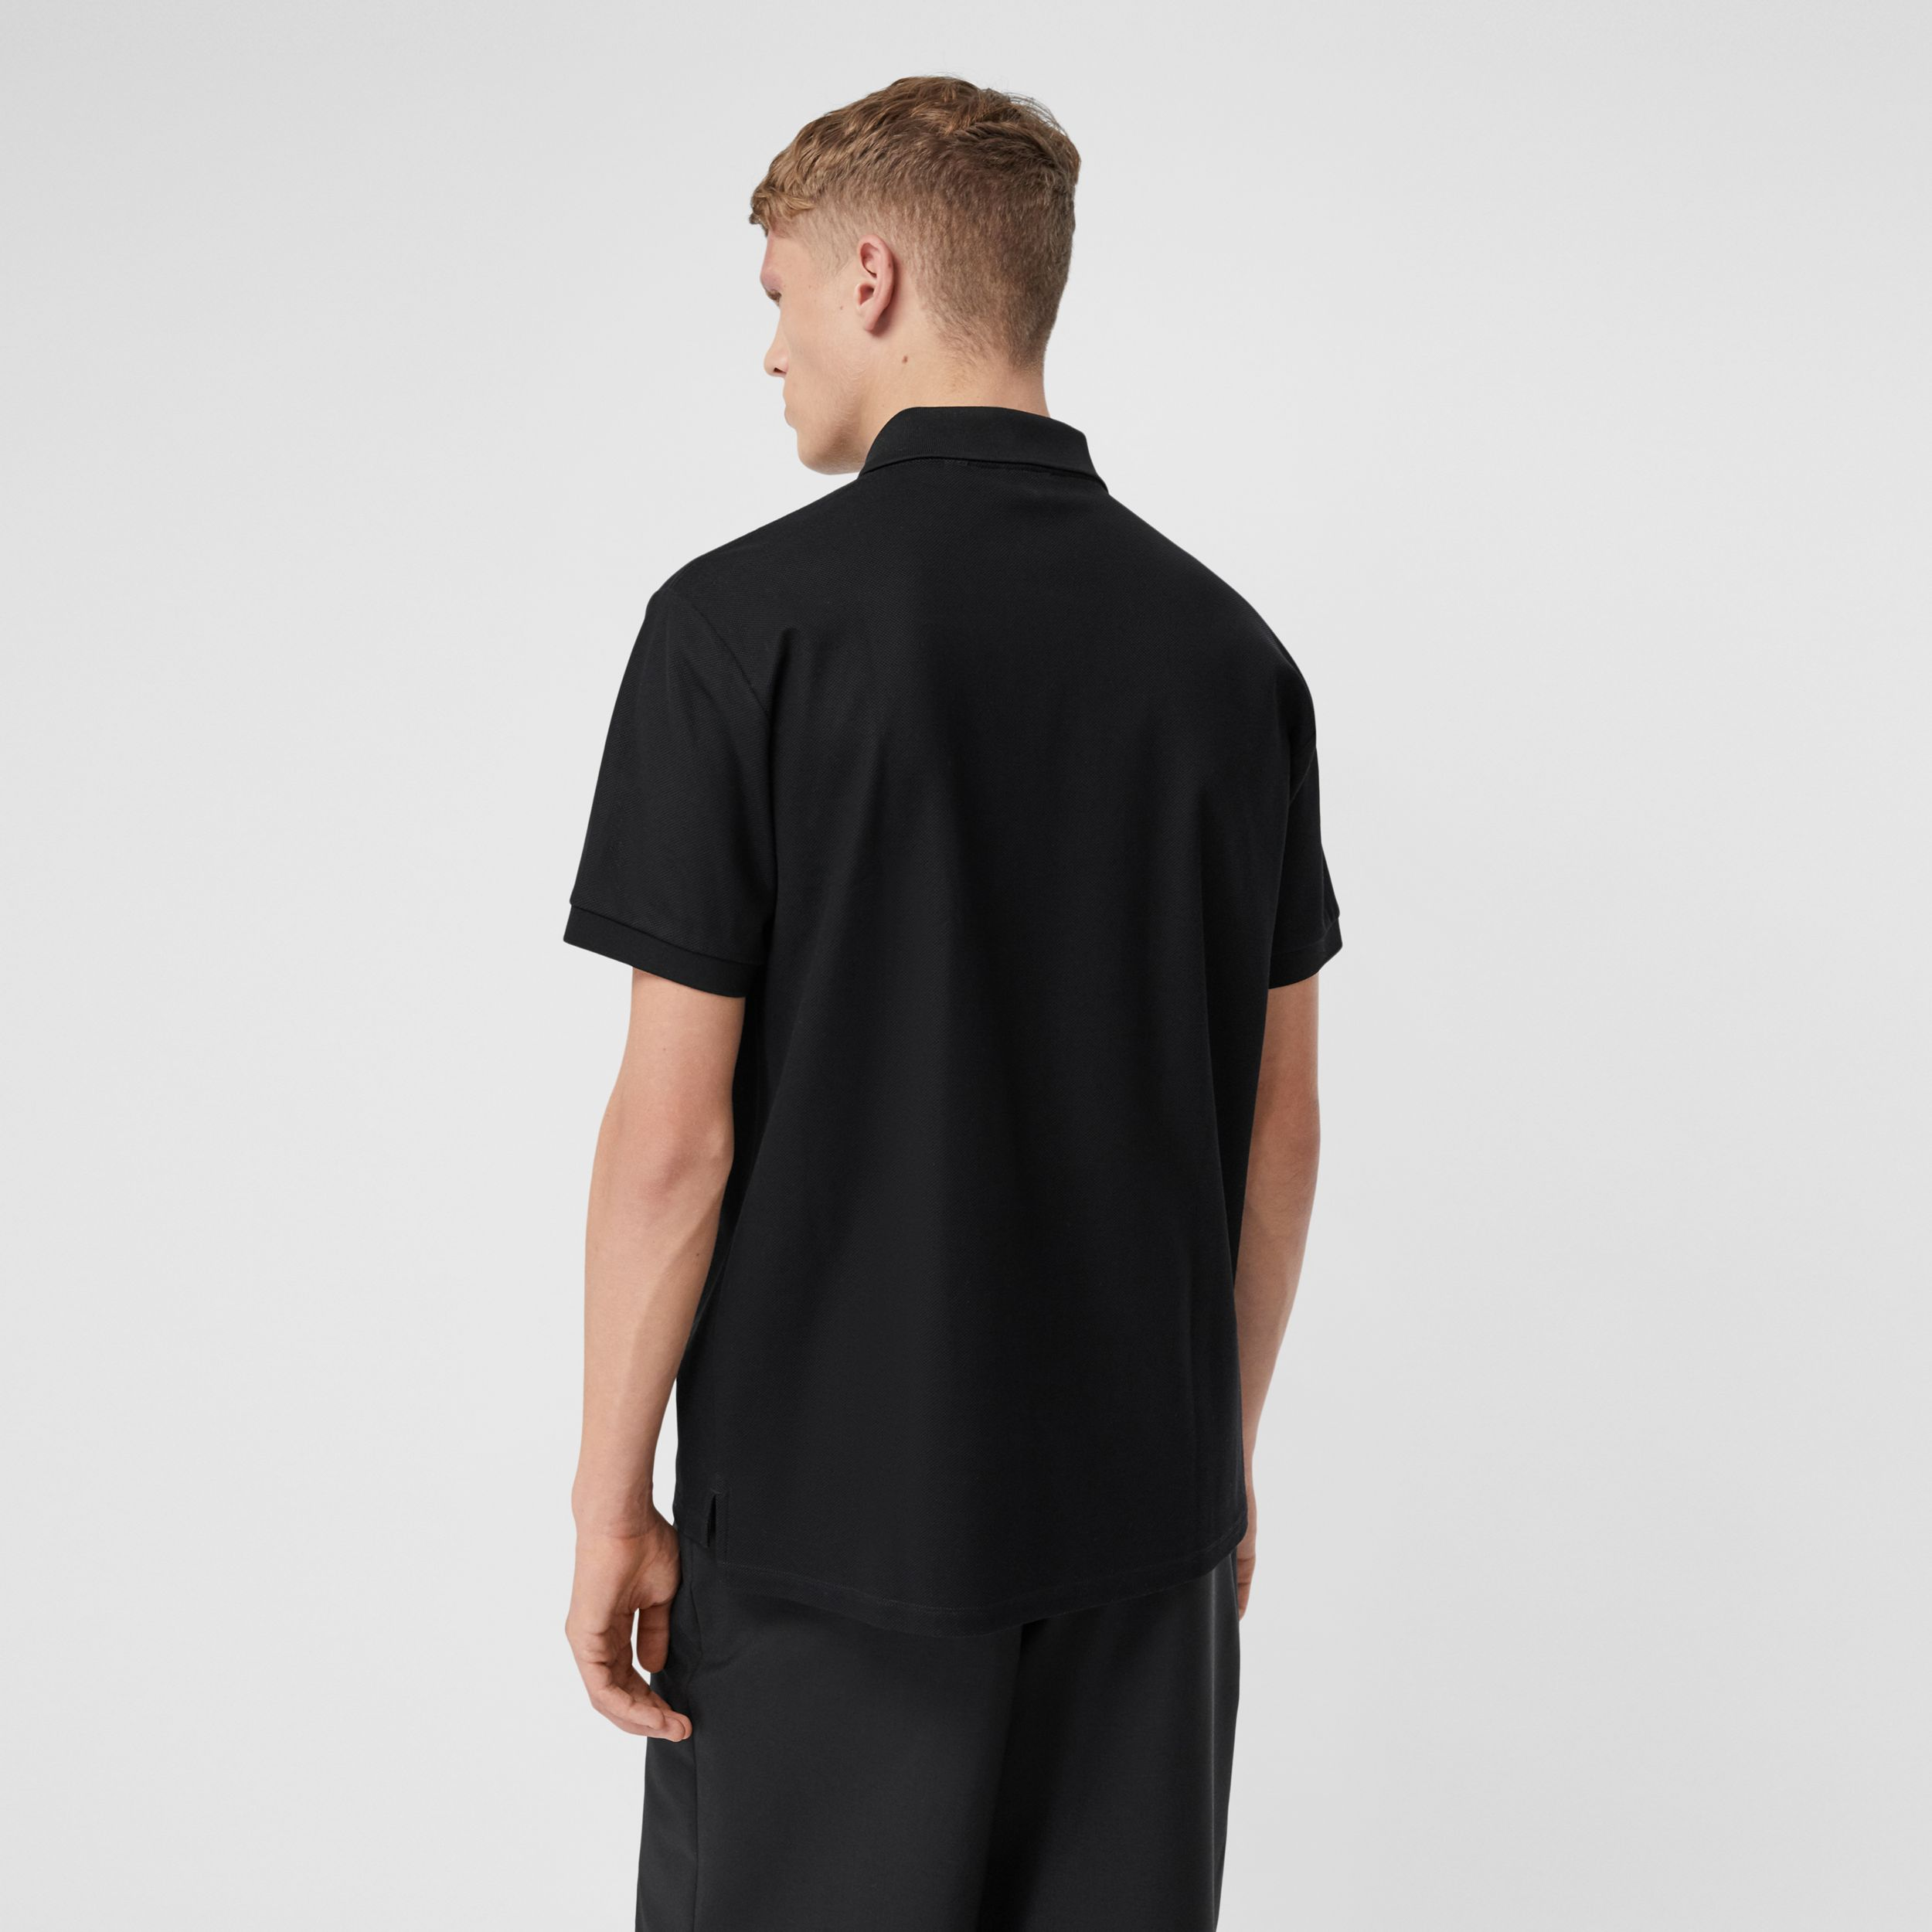 Zebra Appliqué Cotton Piqué Polo Shirt in Black - Men | Burberry - 3